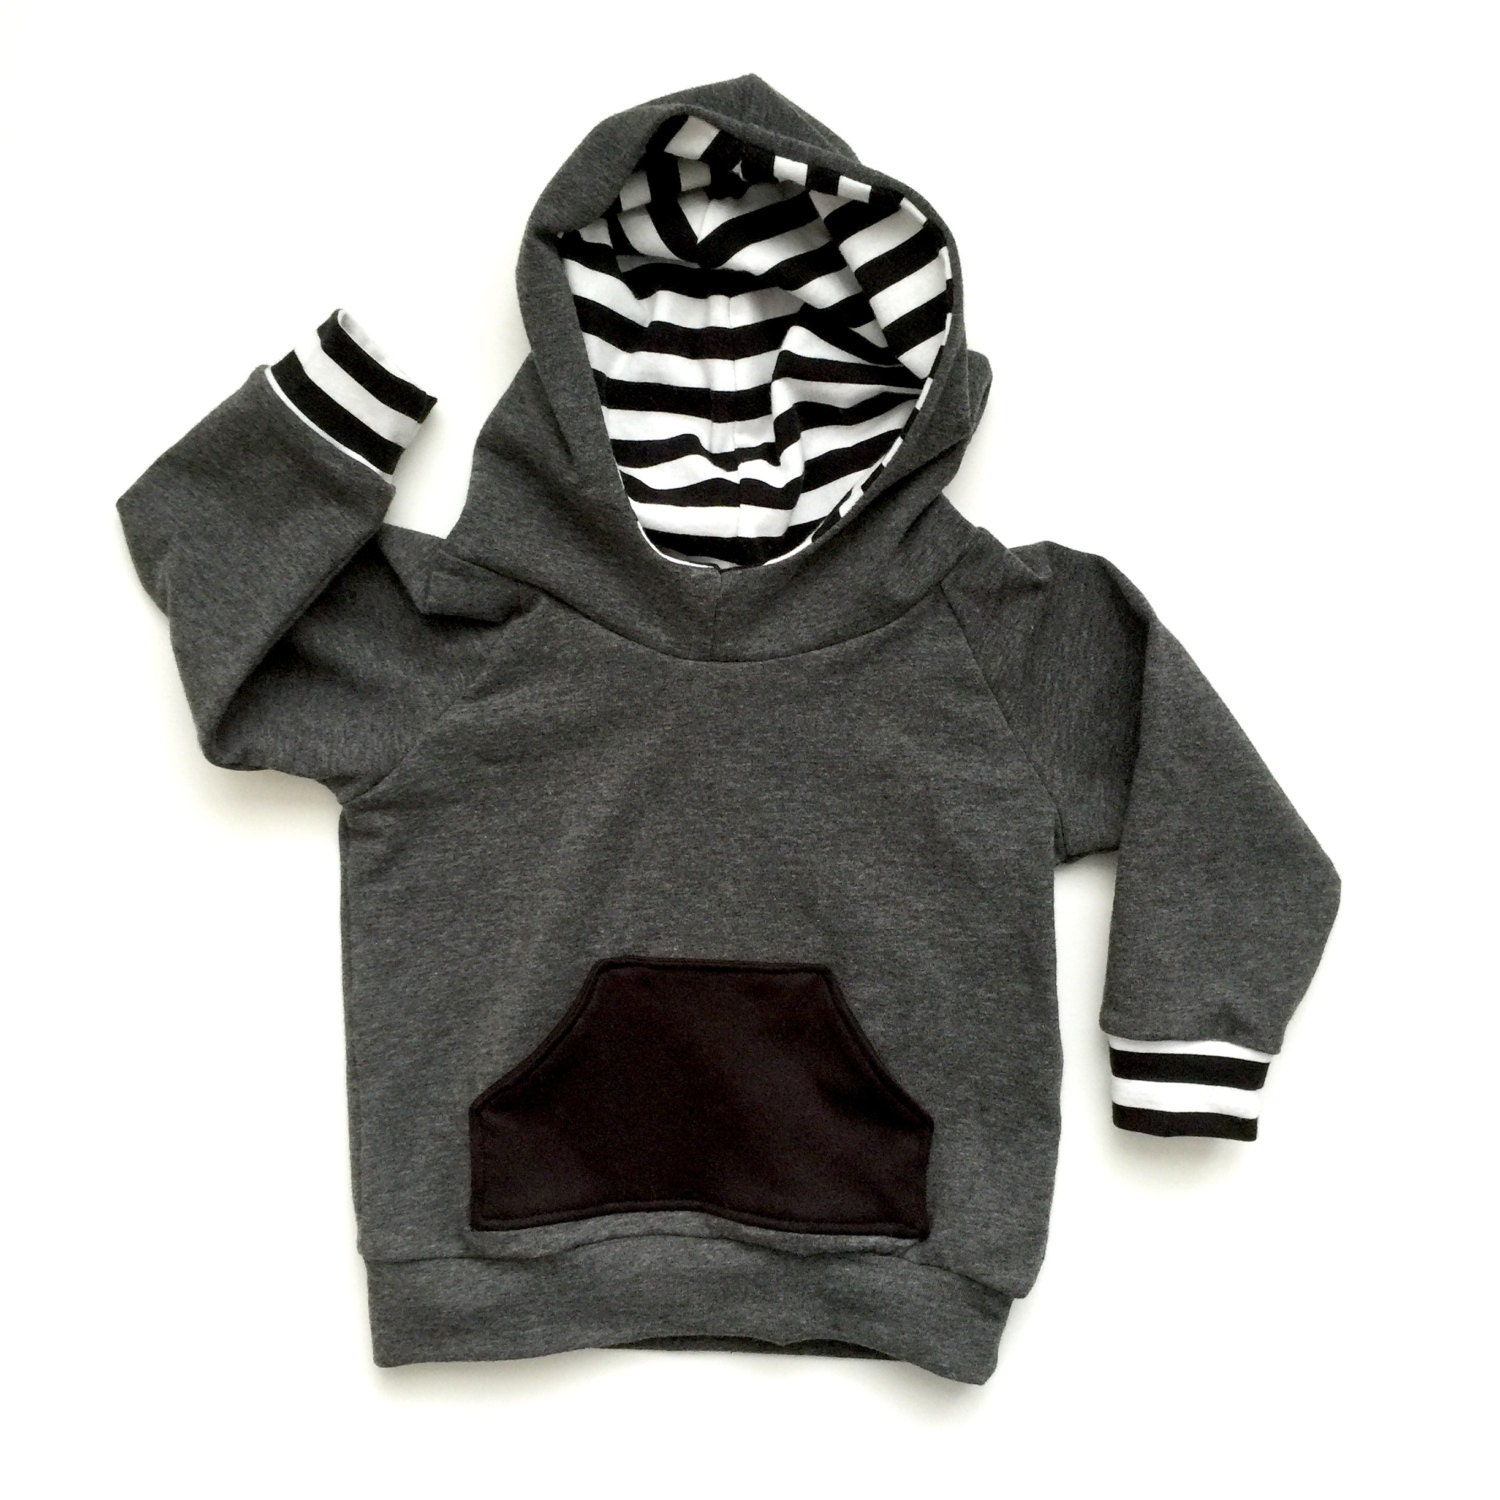 Infant hoodies